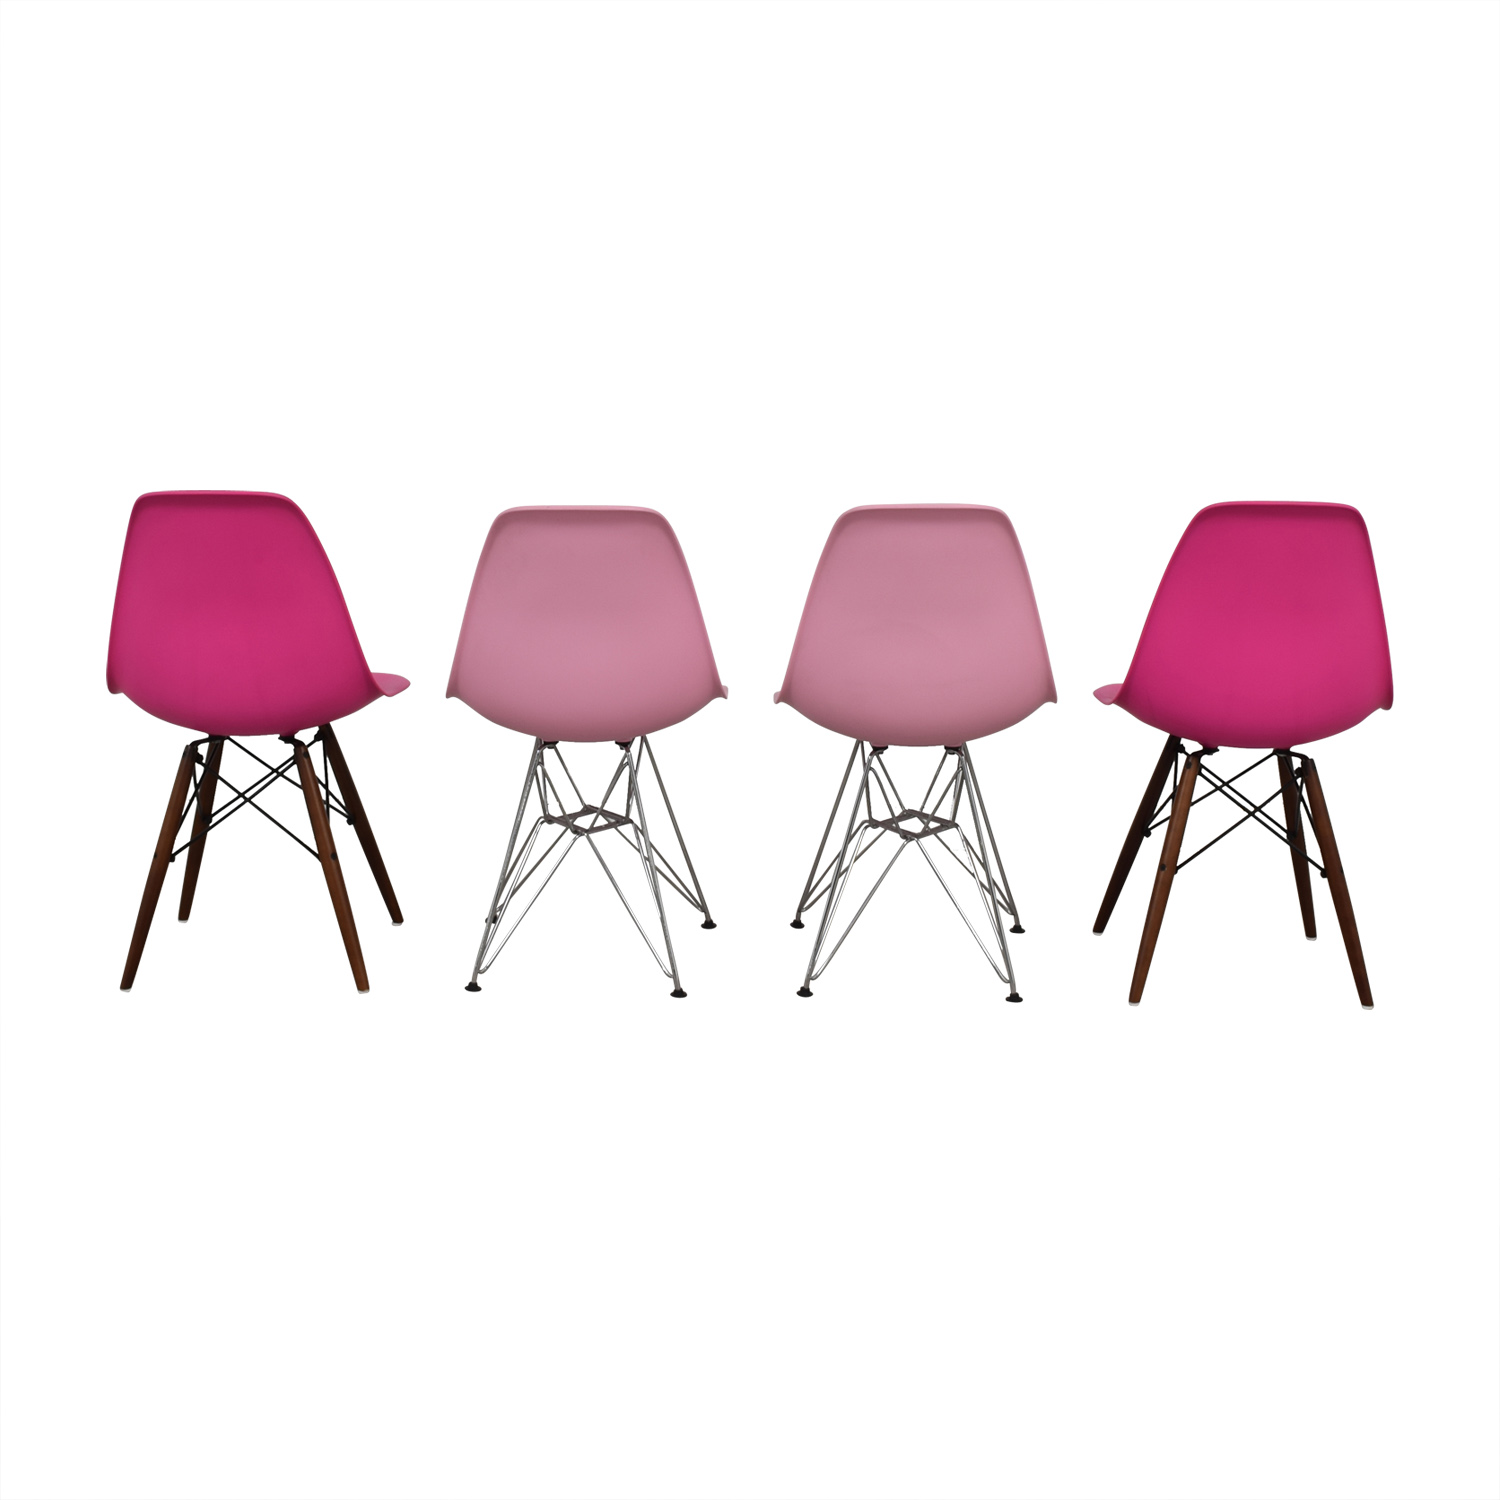 buy Mid Century Style Pink Plastic Chairs  Chairs